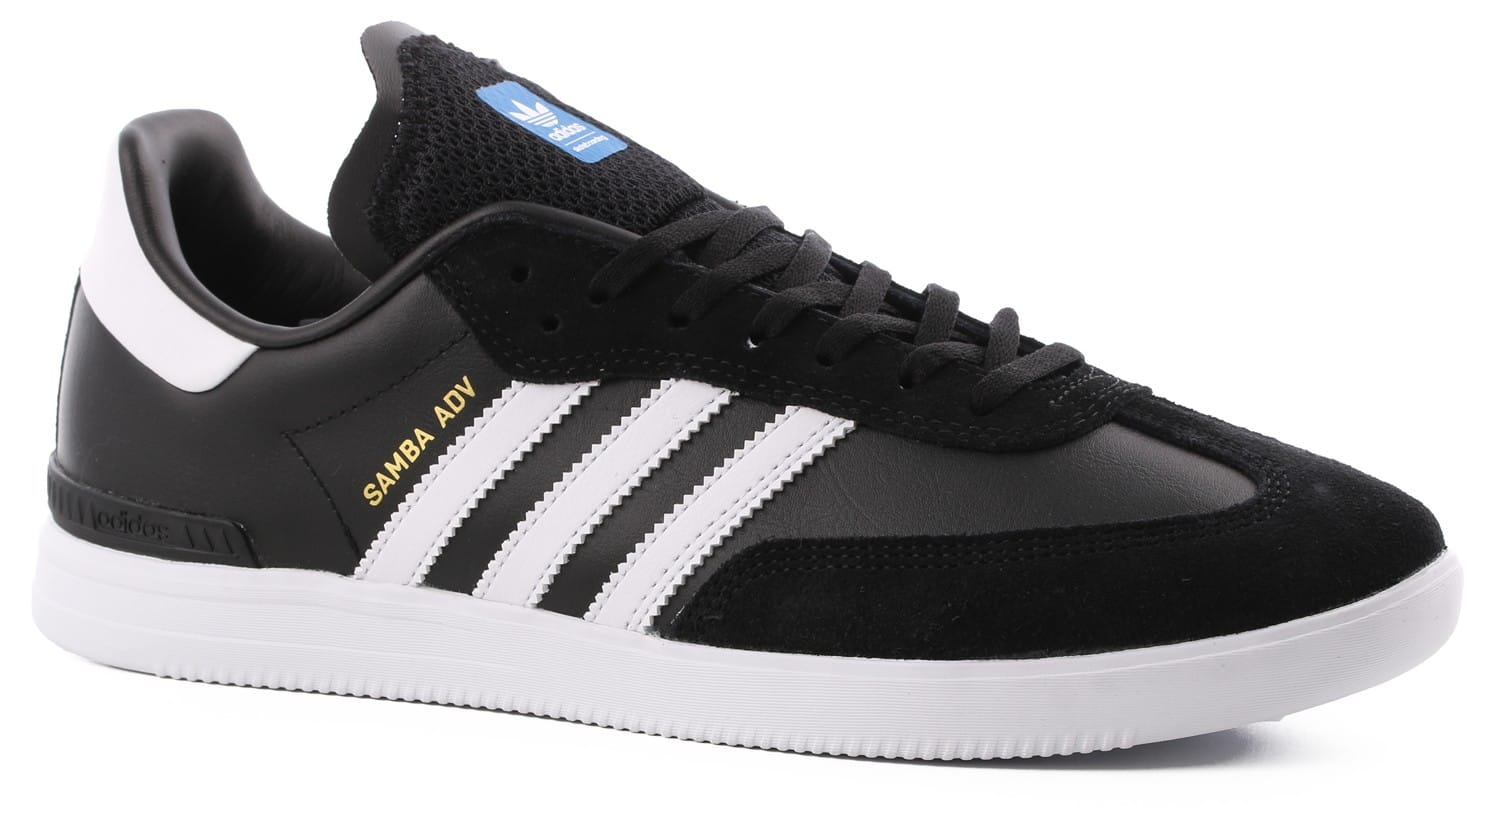 adidas samba adv skate shoes free shipping. Black Bedroom Furniture Sets. Home Design Ideas